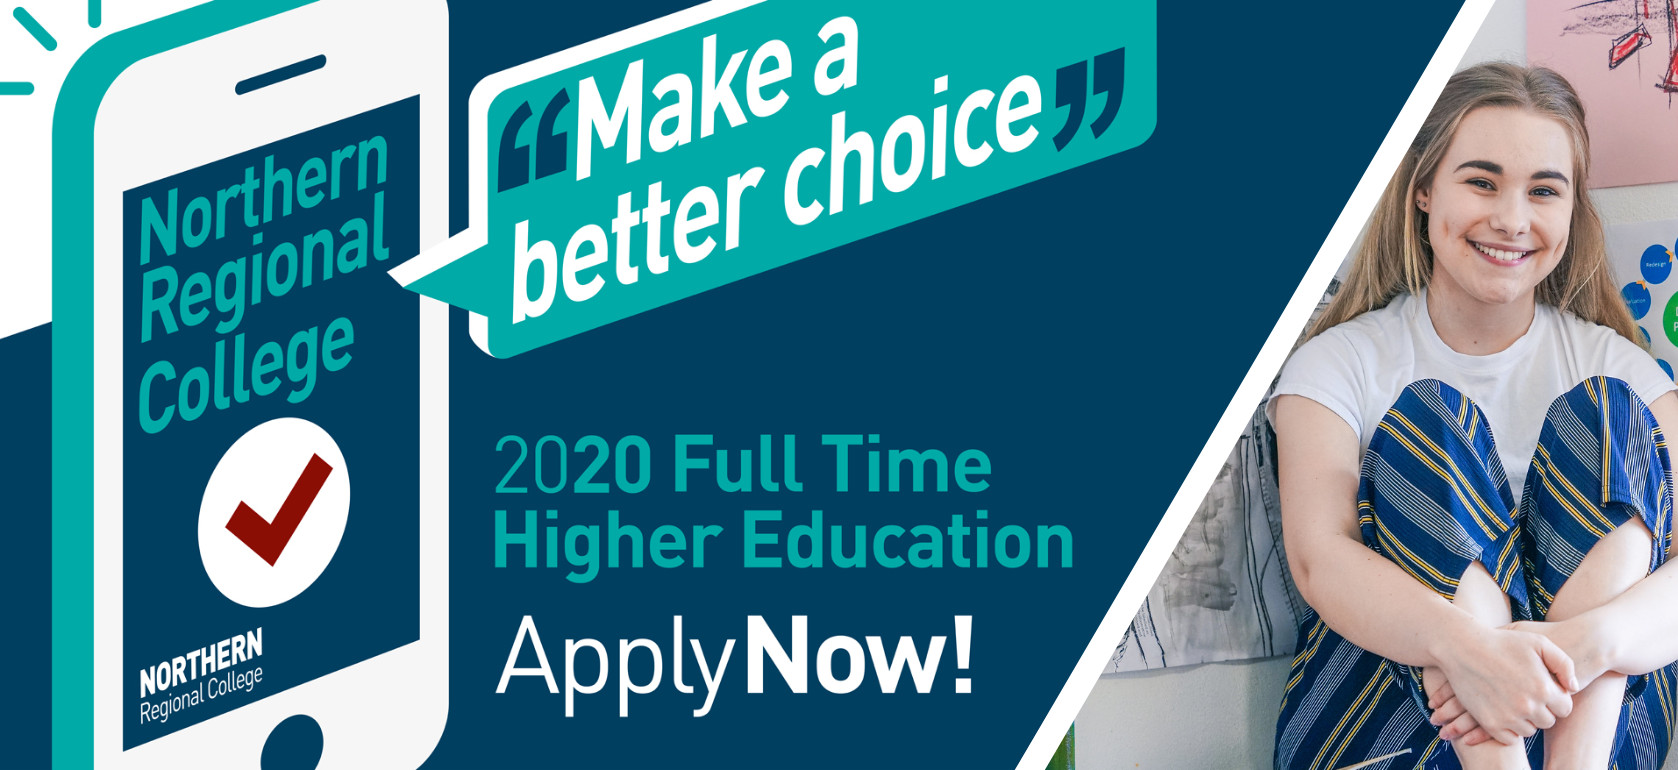 Applications for 2020 Full-time Higher Education courses are now available